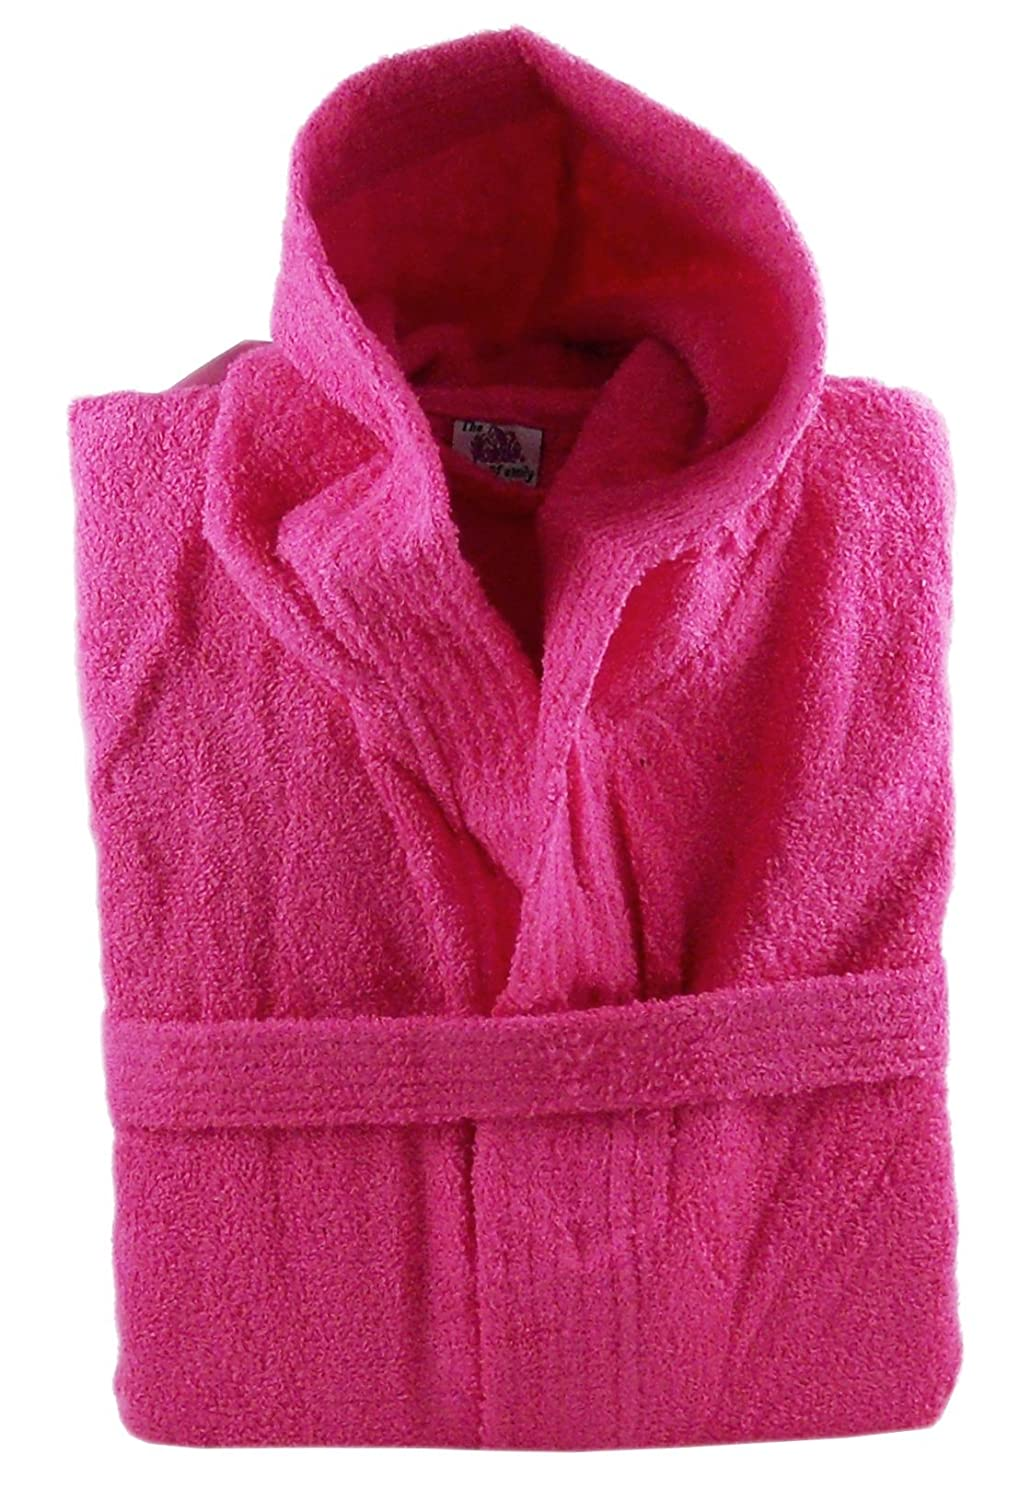 100% Cotton Terry Towelling Hooded Bath Robe + Matching Belt - Extra Large (Fuchsia Pink)